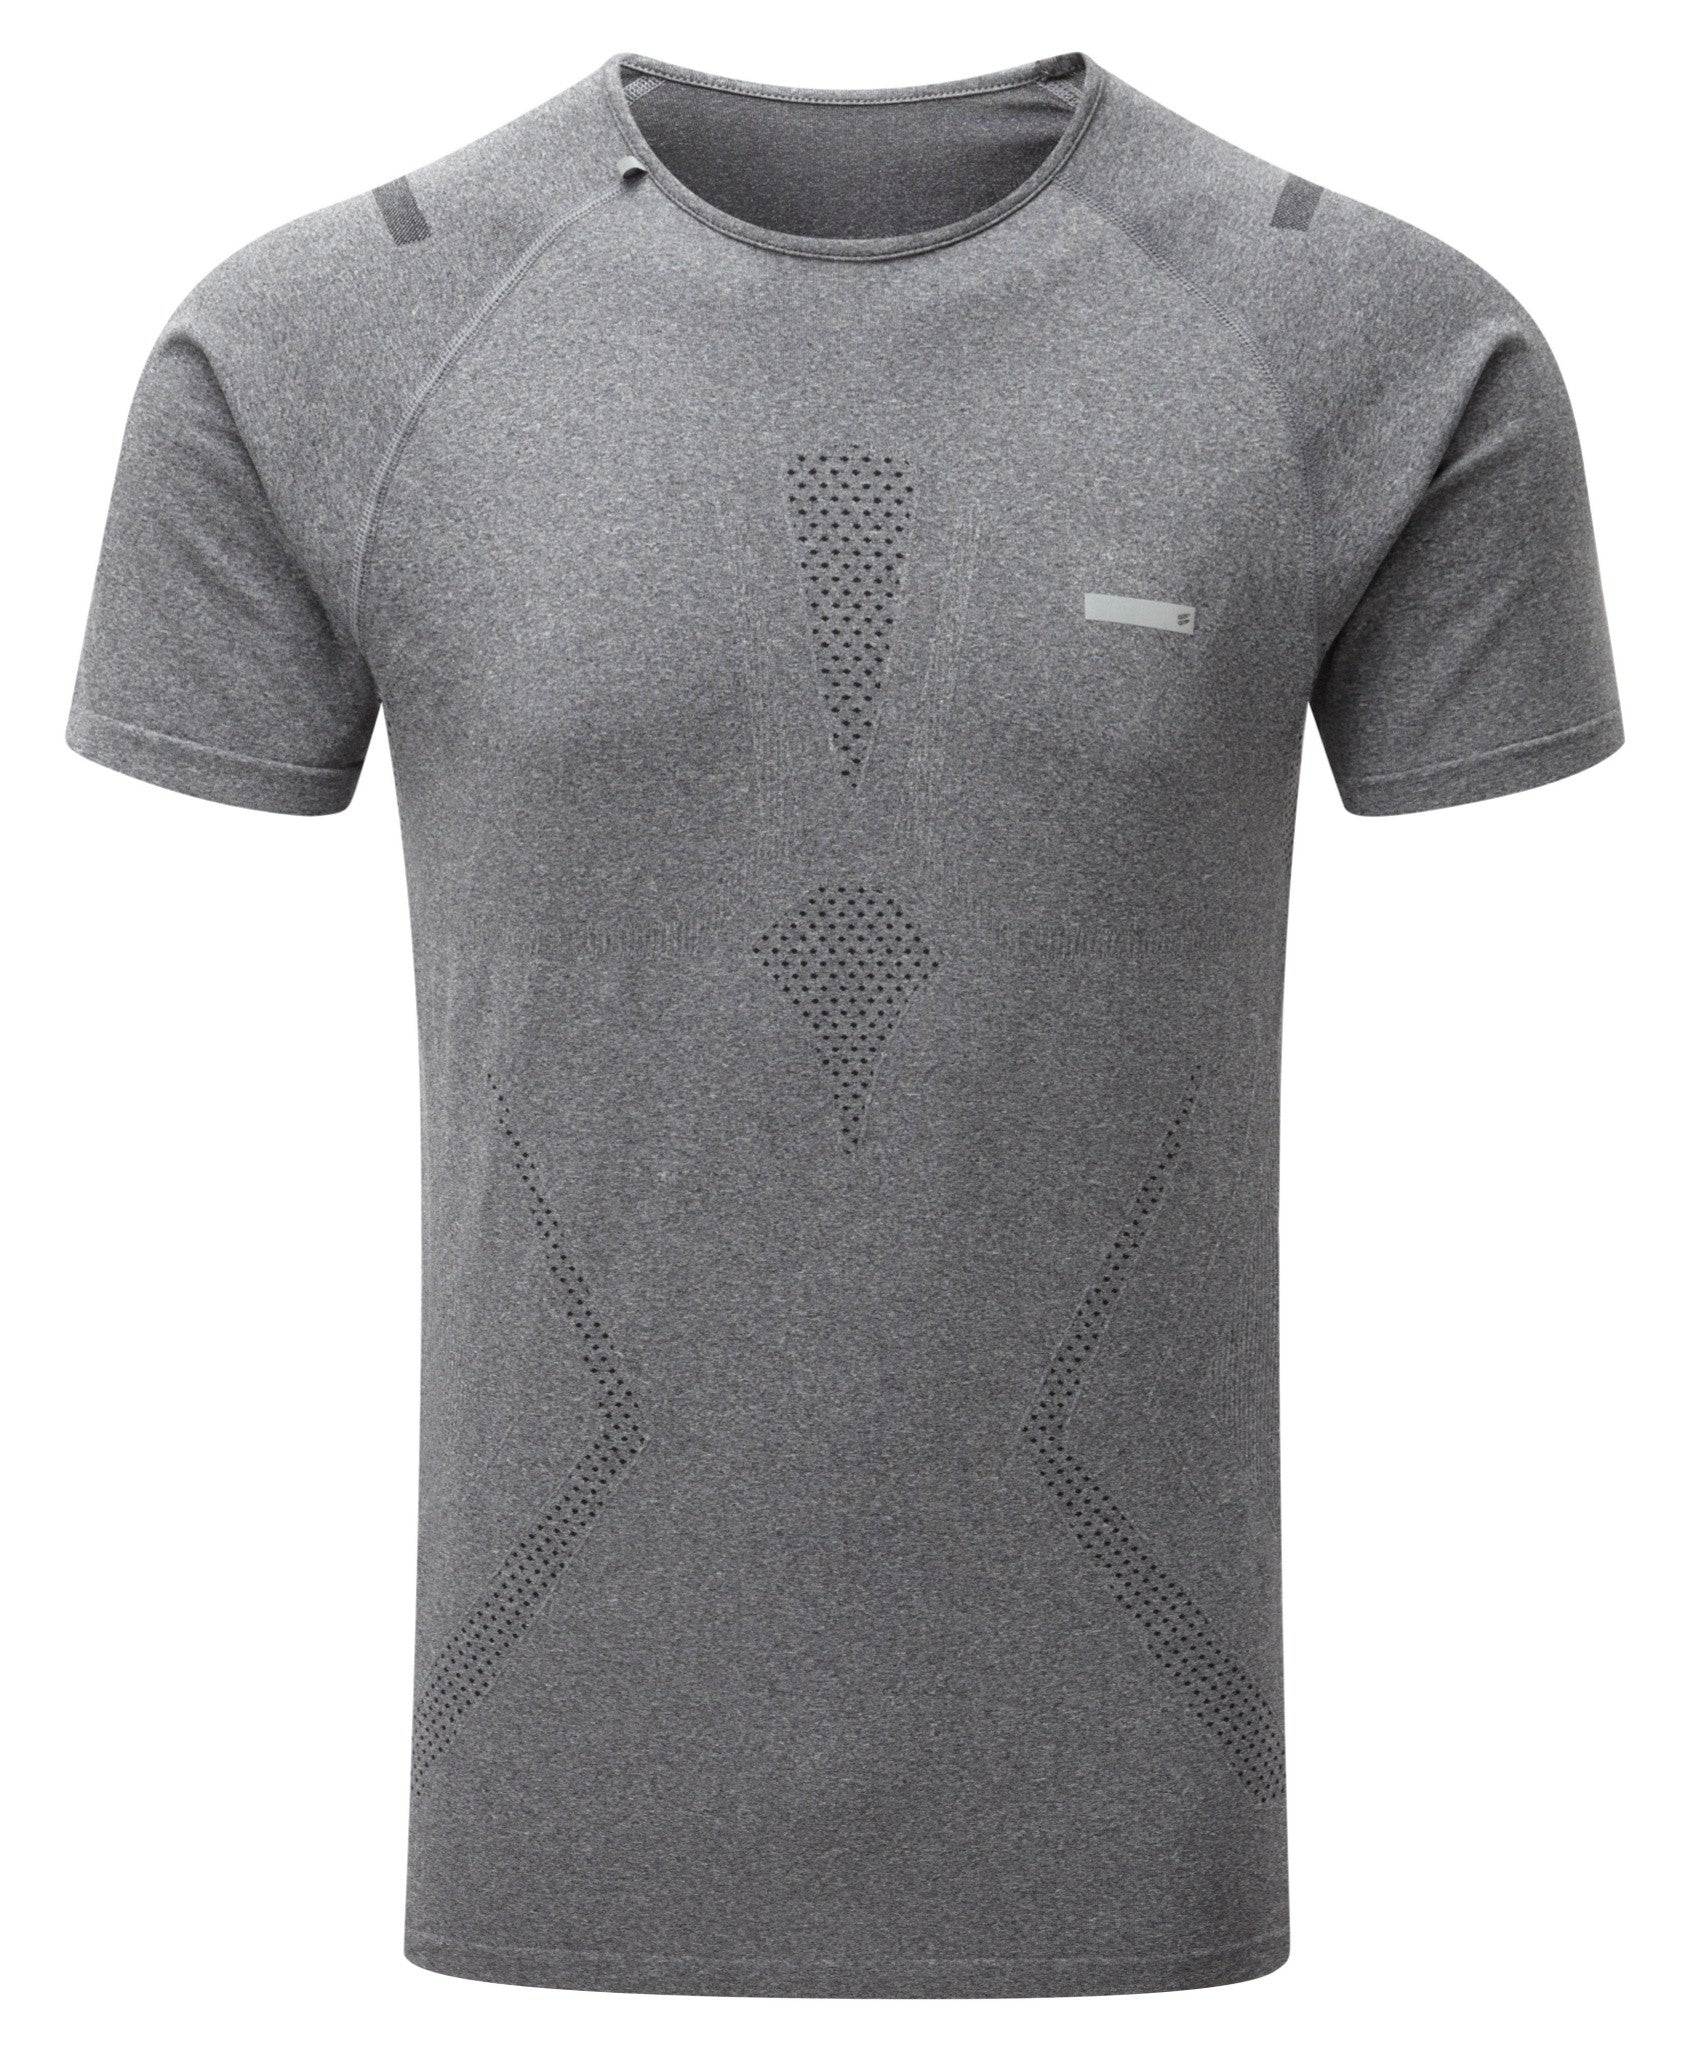 Engineered Short Sleeved Tee - Charcoal Grey Melange